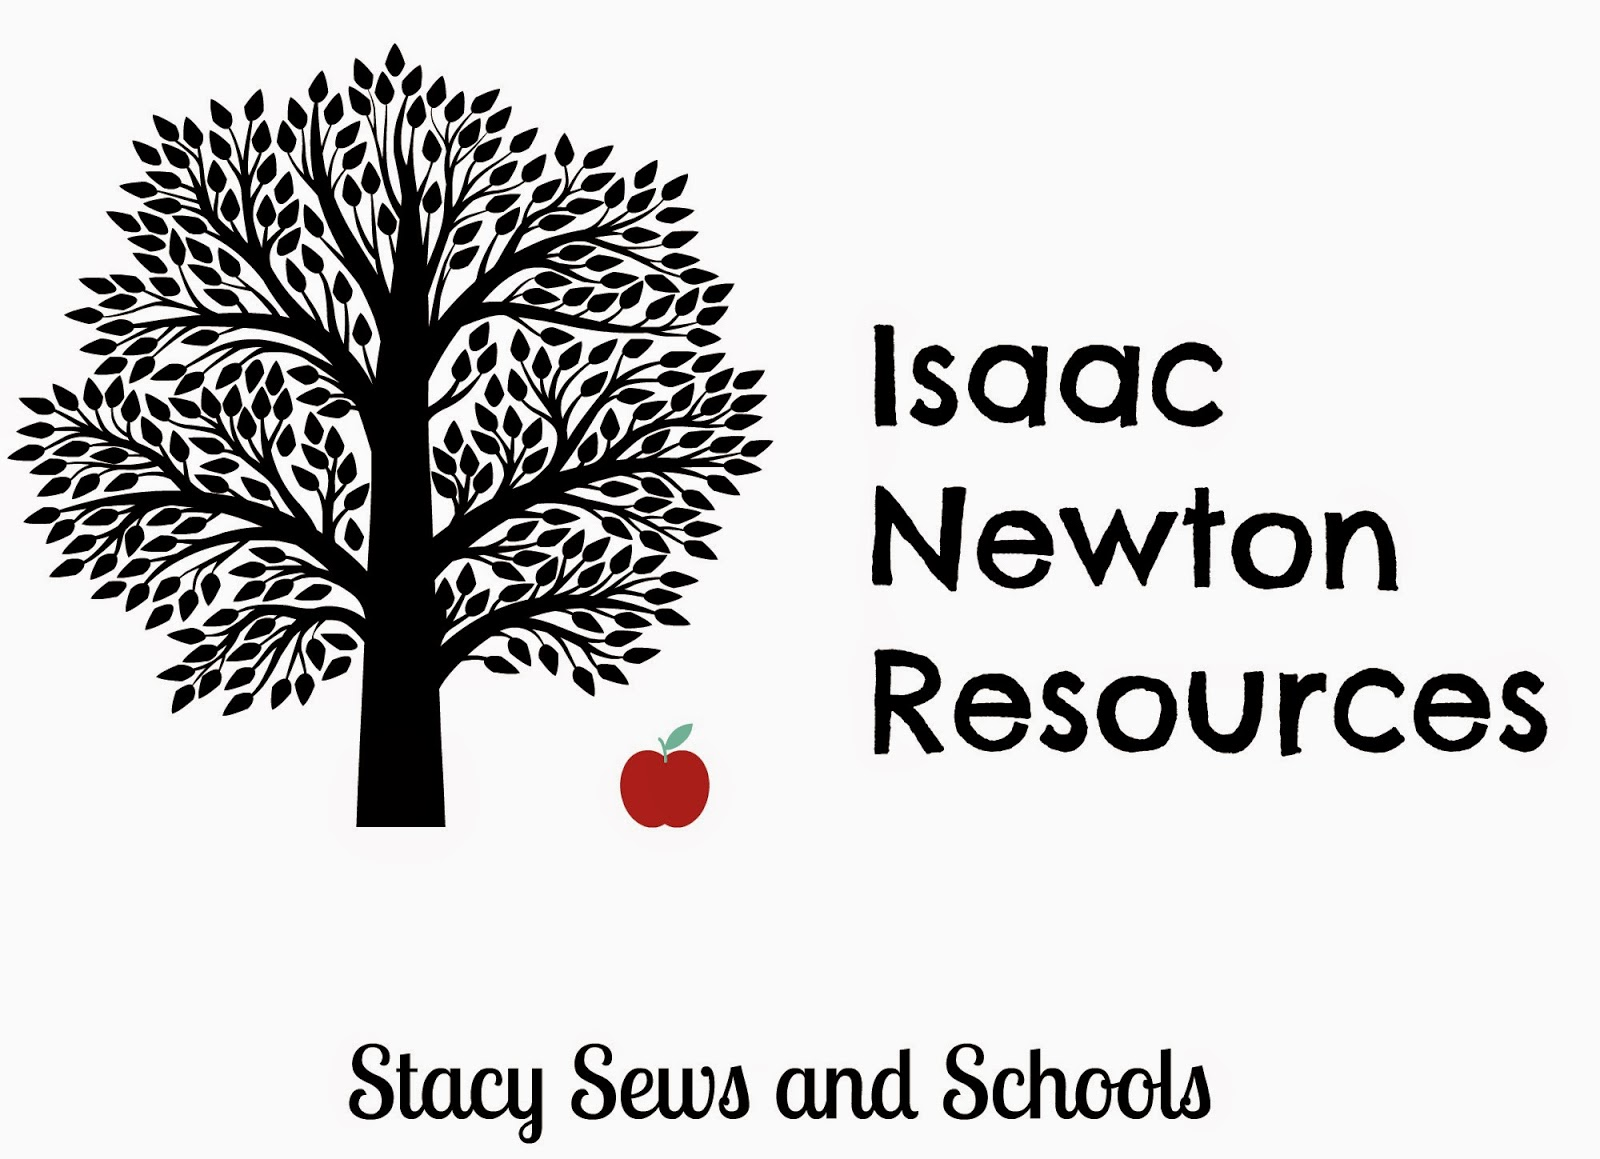 Stacy Sews And Schools Isaac Newton Learning Resources